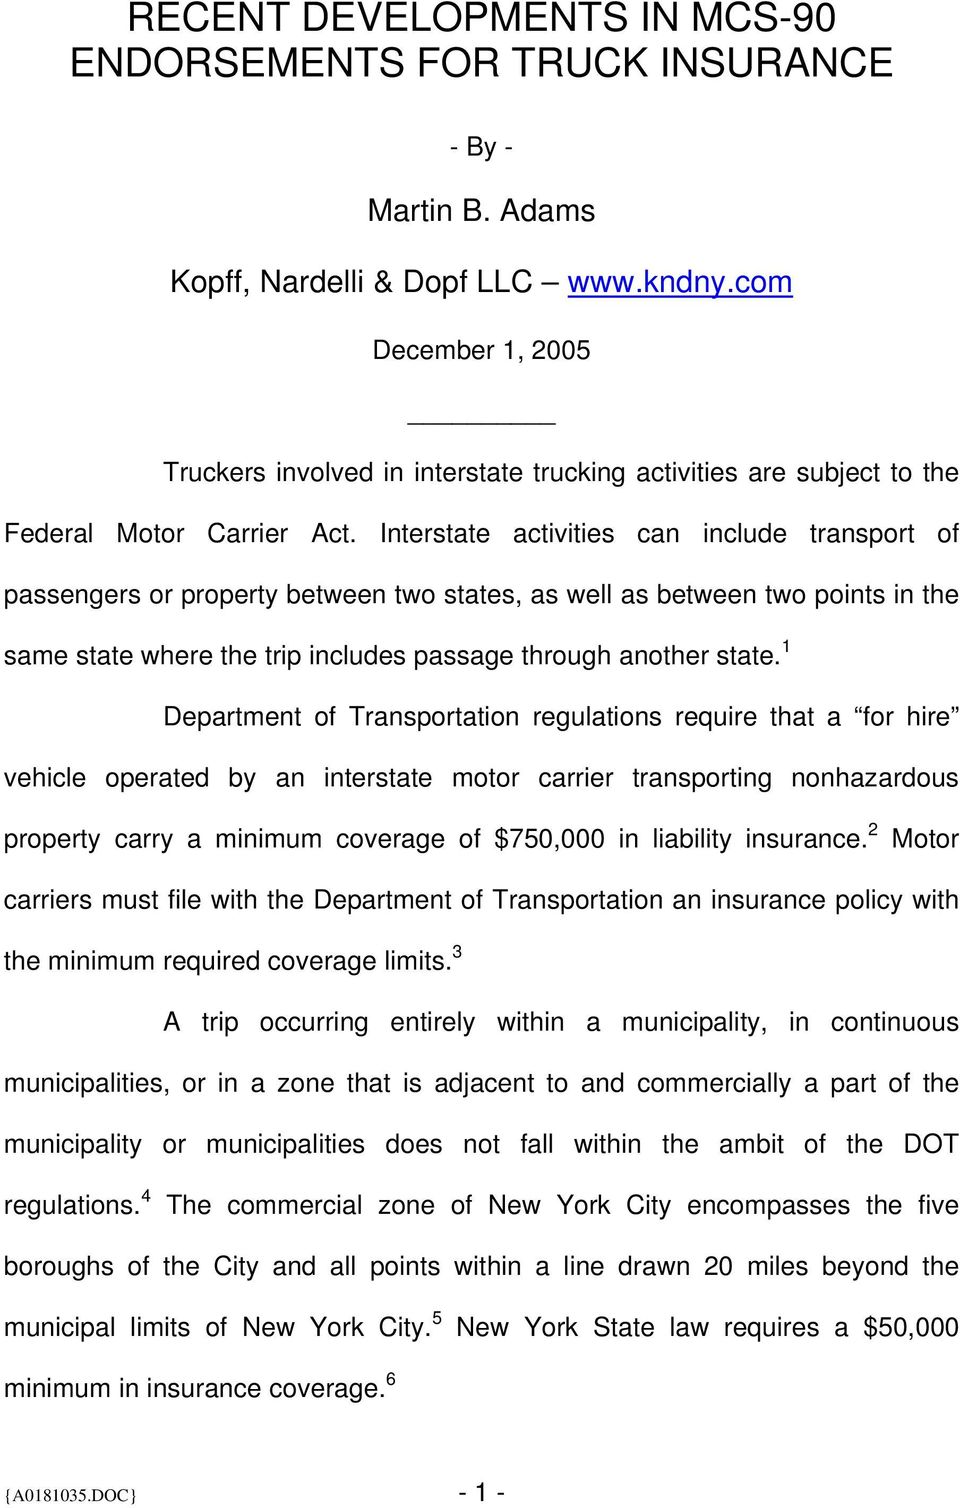 Interstate activities can include transport of passengers or property between two states, as well as between two points in the same state where the trip includes passage through another state.